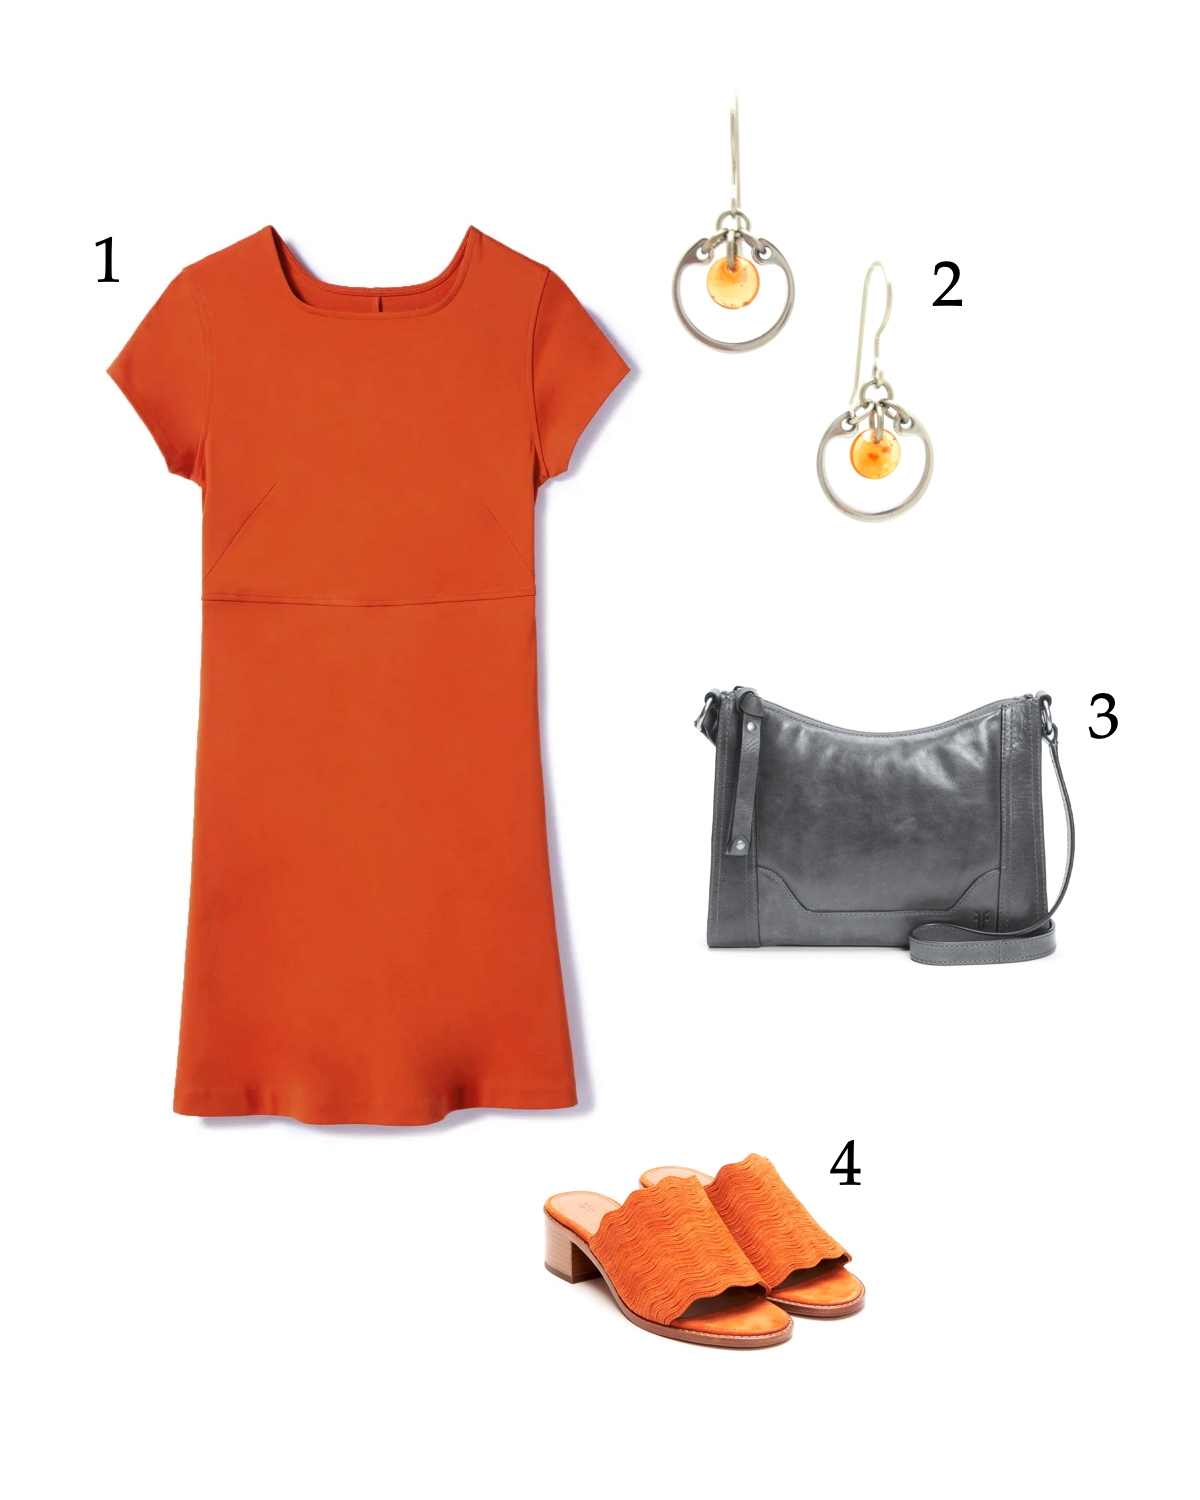 An easy orange summer outfit with a modern dress, mules, and simple classic earrings.